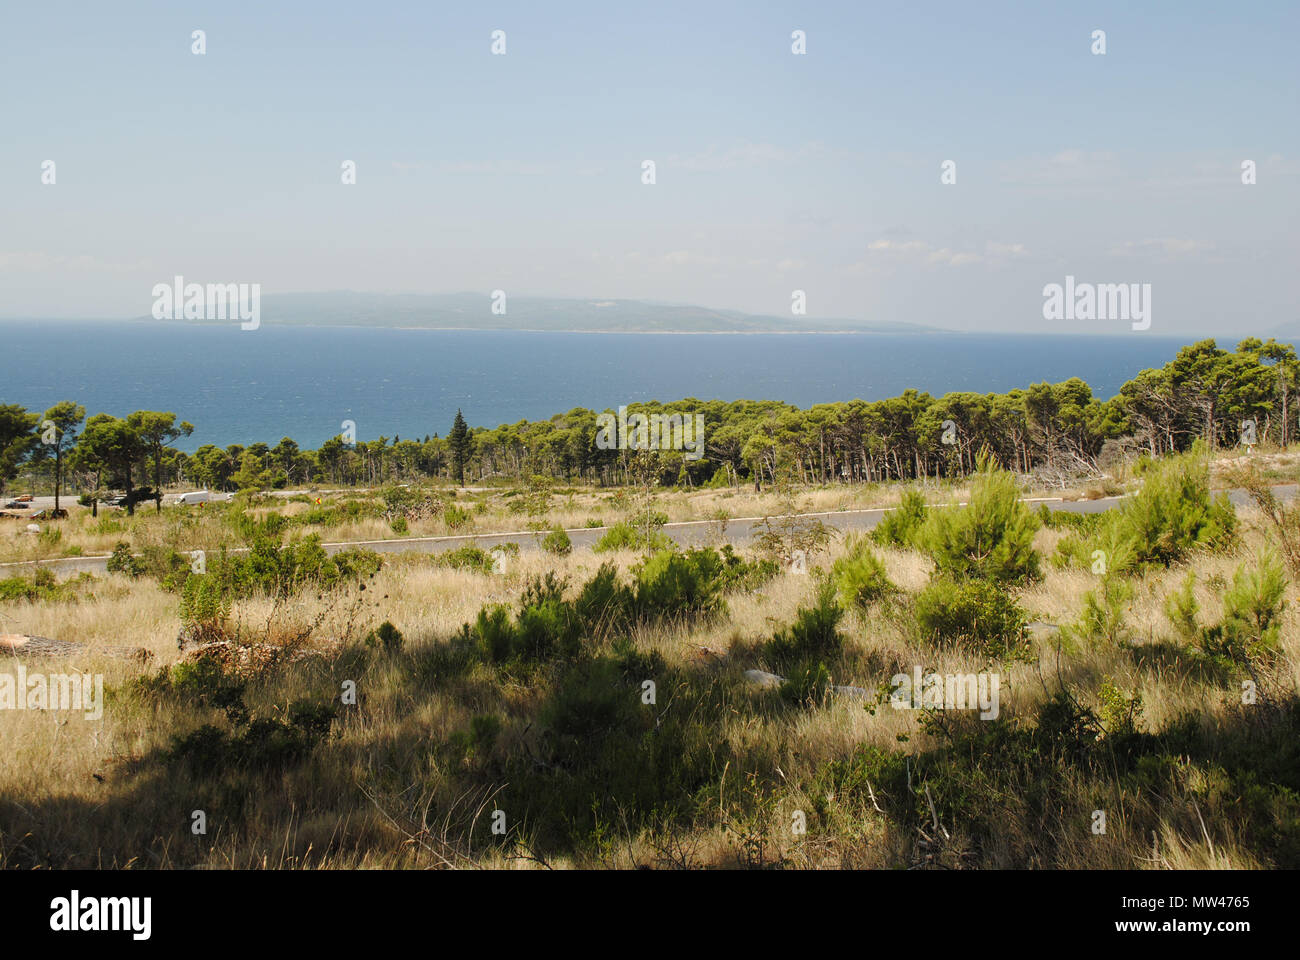 Brač Island, the largest one in Dalmatia, viewed from the mainland. Stock Photo